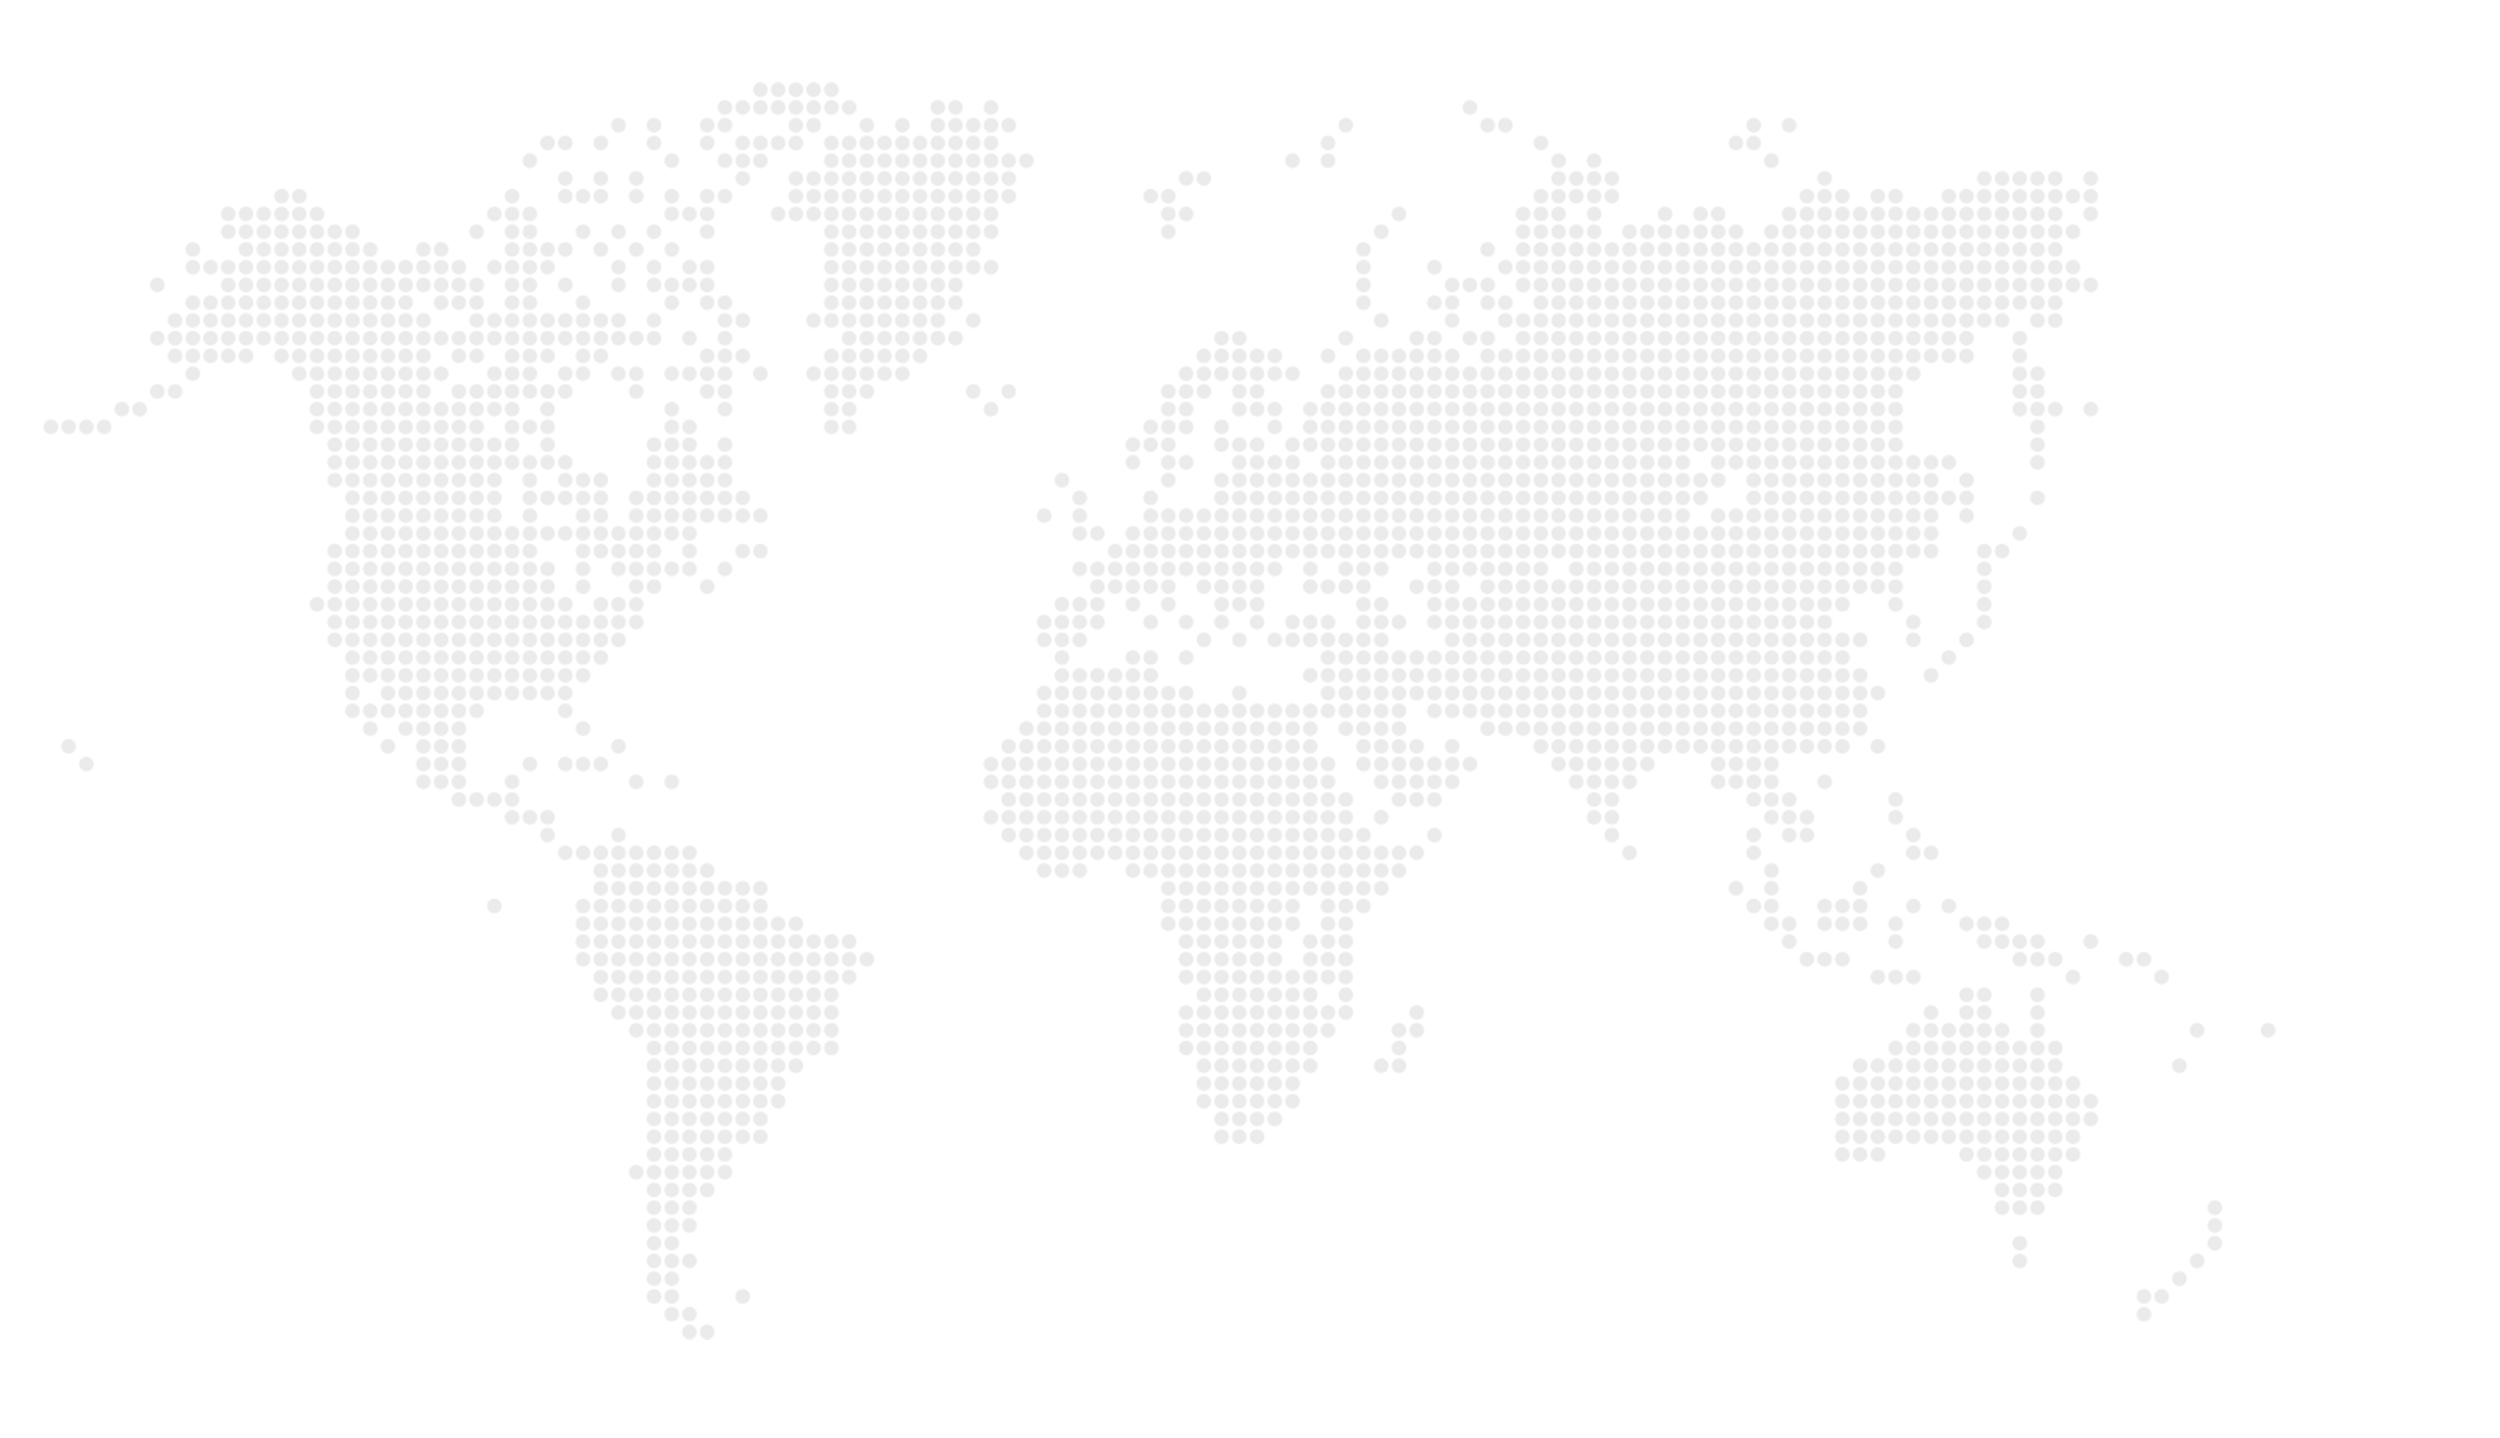 Transparent background png. With dots palletized trucking